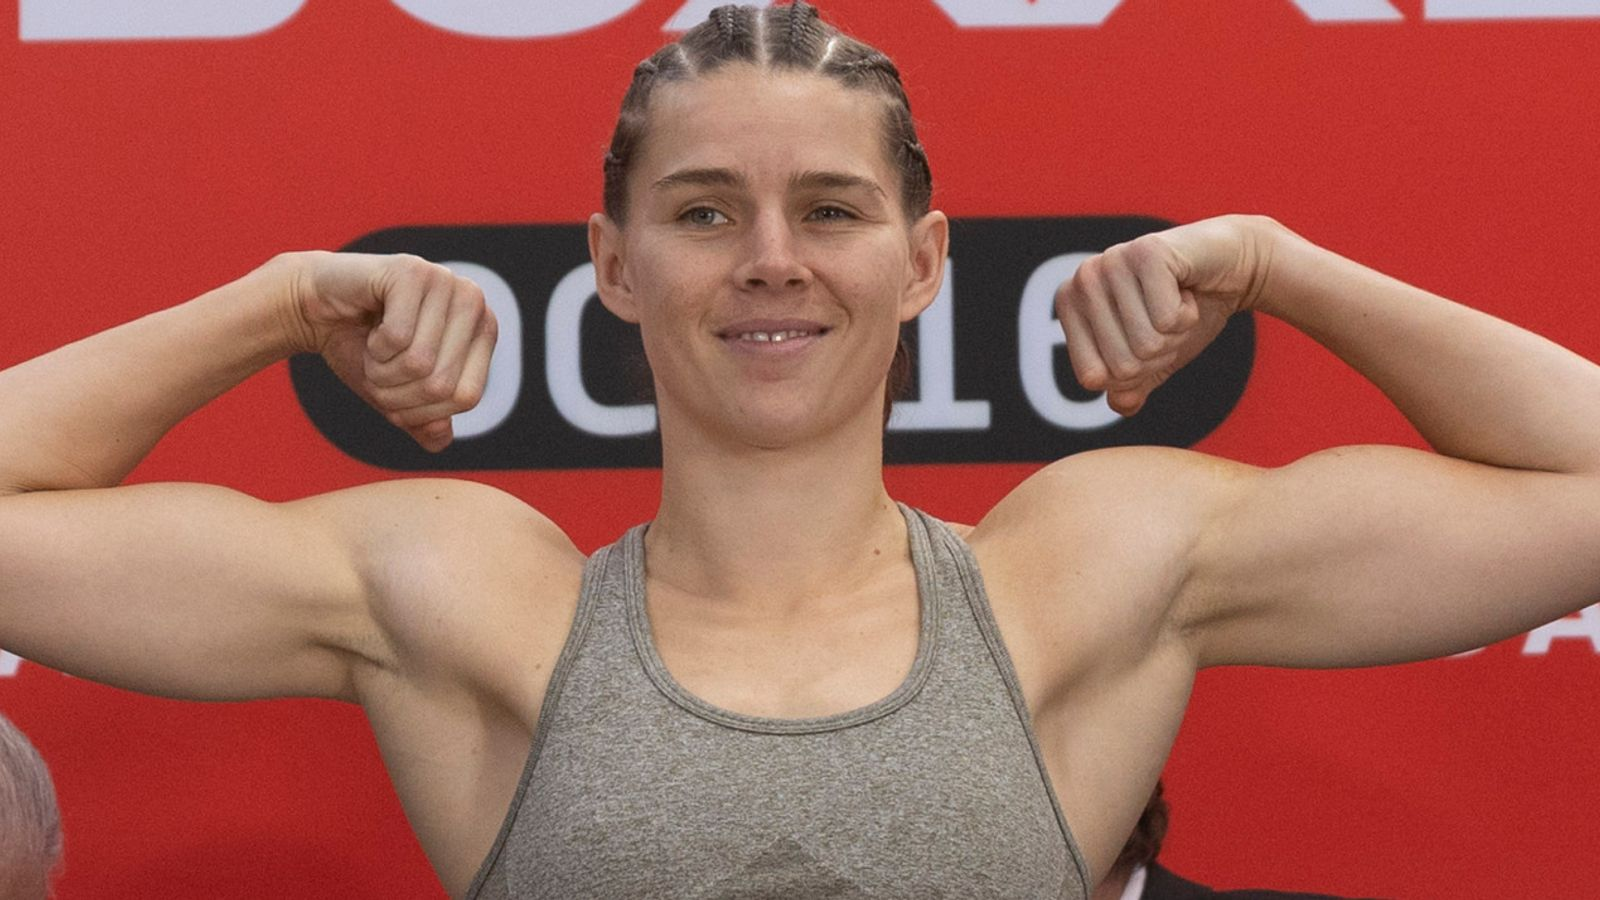 Savannah Marshall on Claressa Shields ahead of legacy fight: 'I've got the power to knock anyone out'